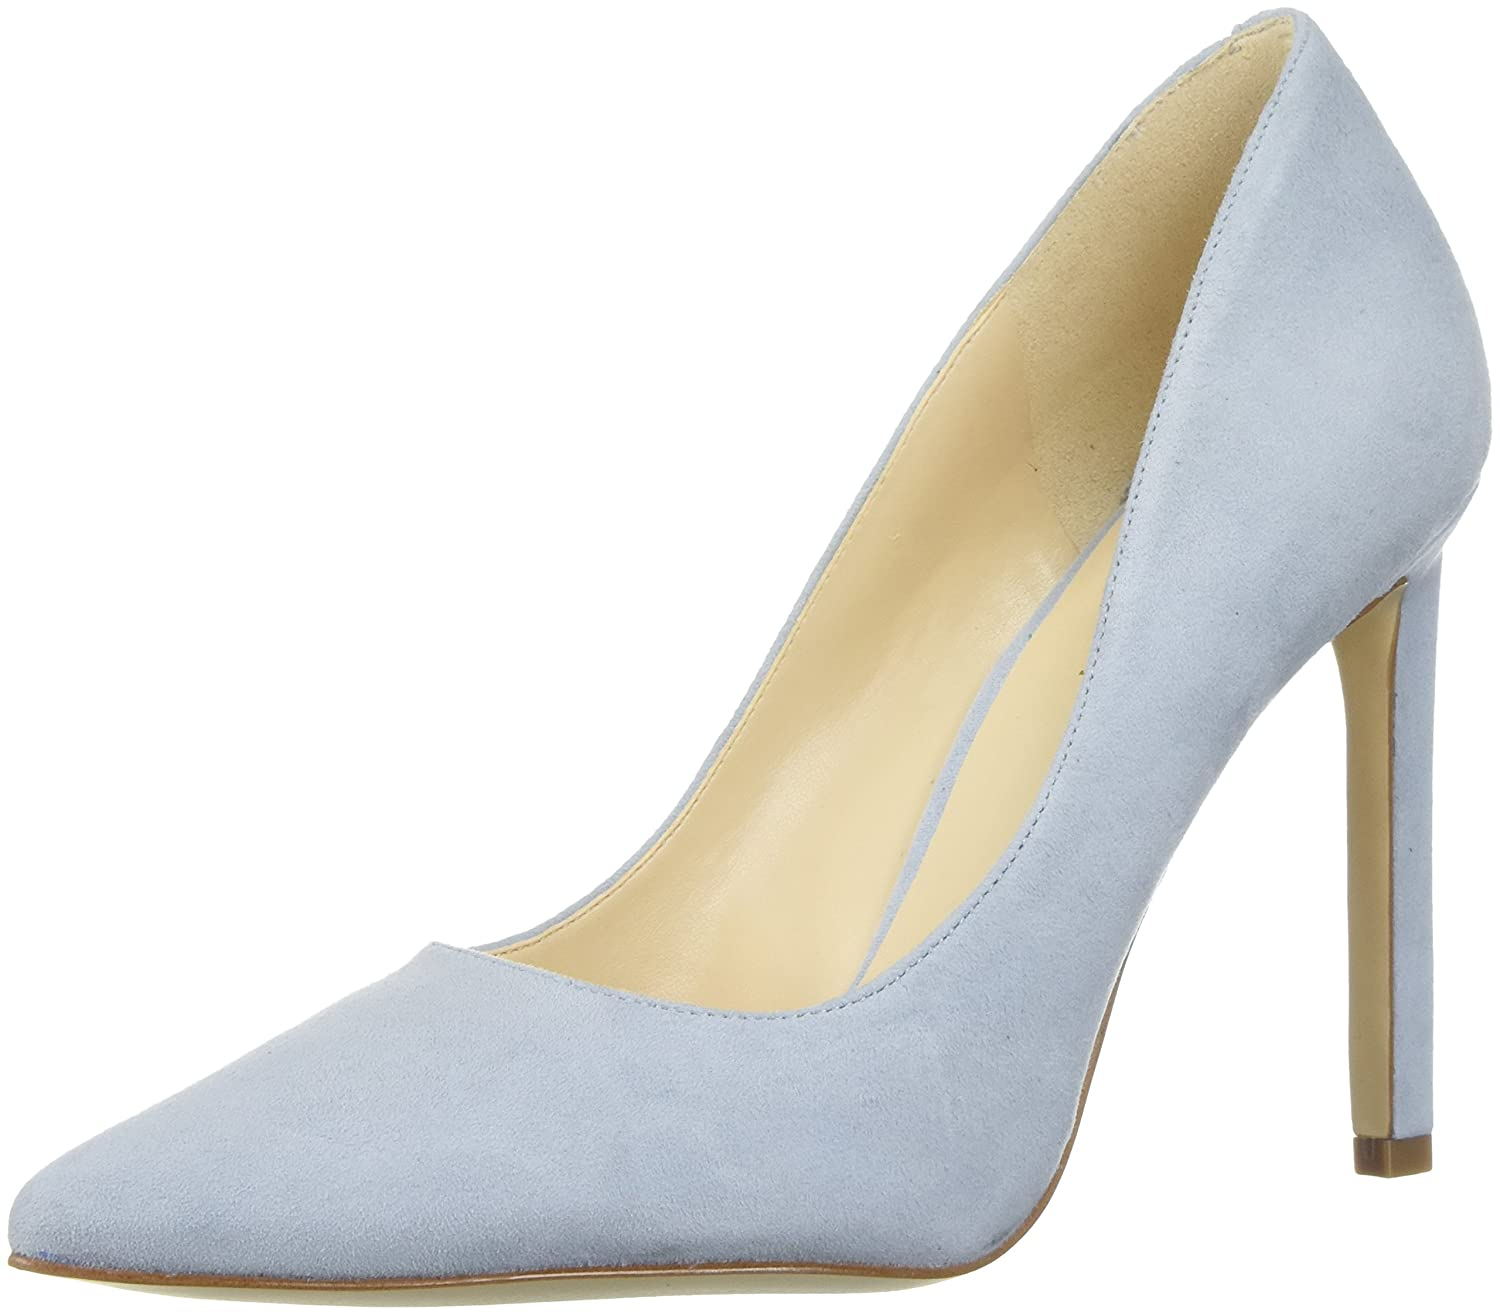 Nine West Women's Tatiana Suede Dress Pump B072JKNZPT 5 B(M) US|Light Blue Suede Suede